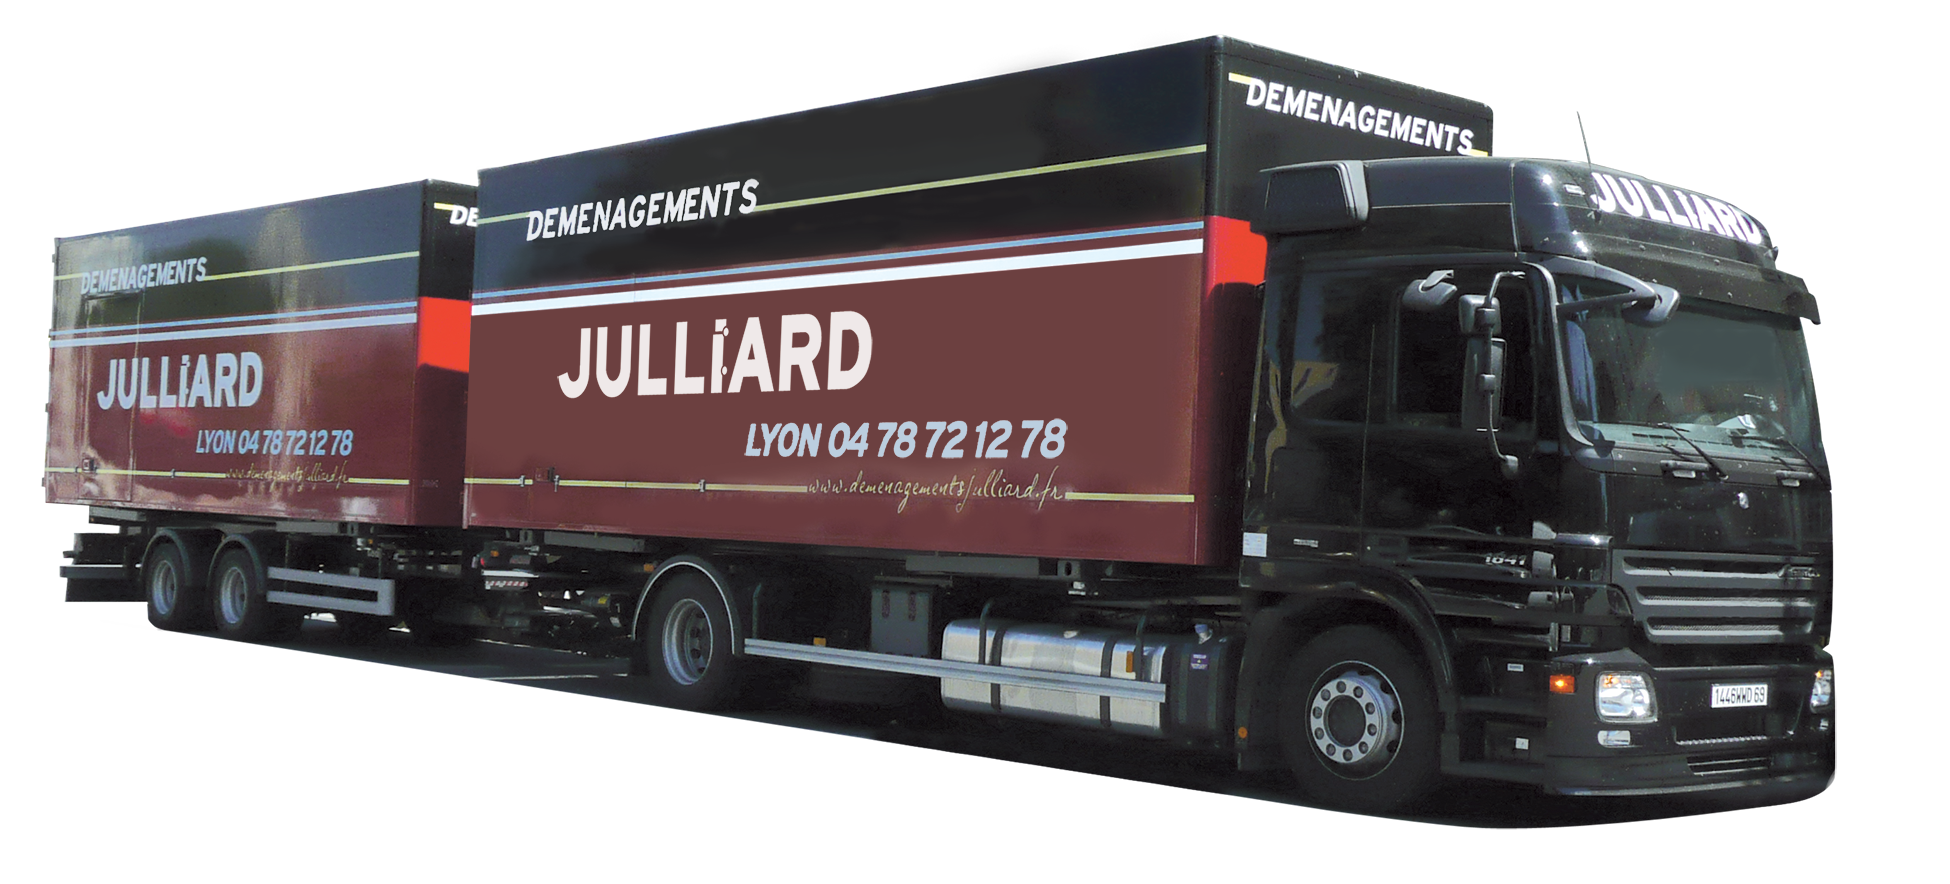 camion demenagement julliard